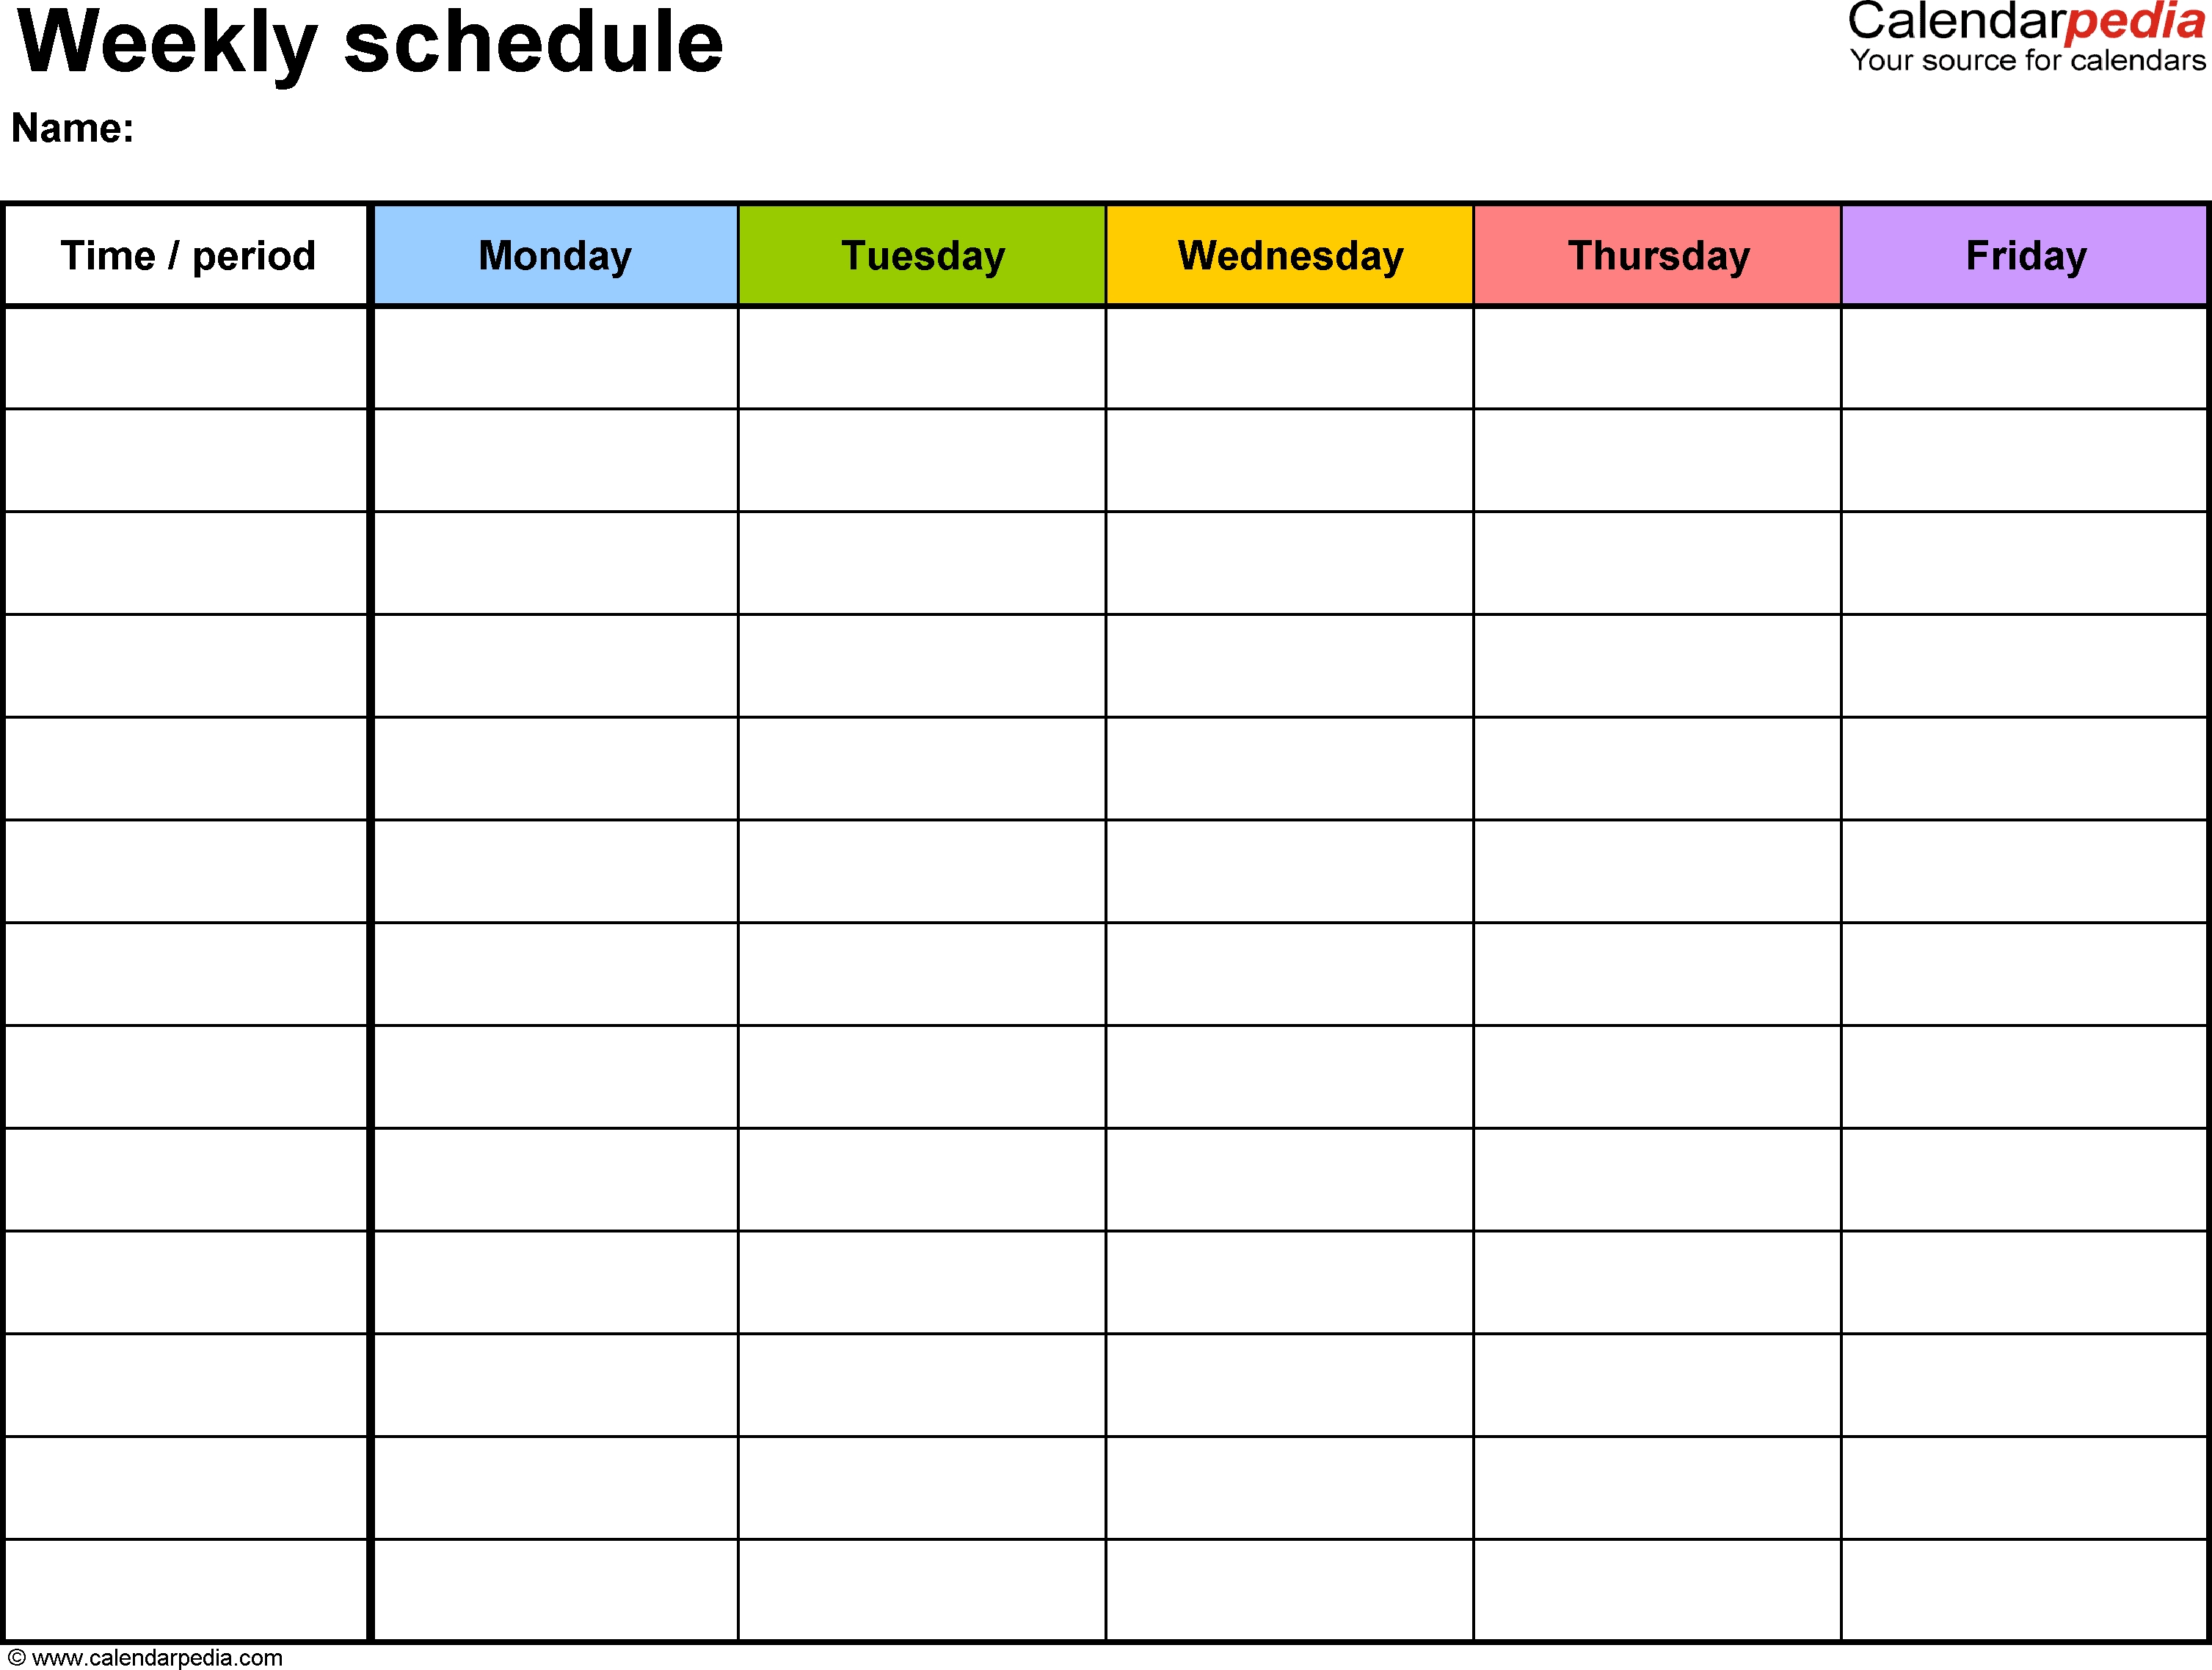 Free Weekly Schedule Templates For Pdf - 18 Templates in Extra Large Printable Blank Weekly Employee Schedule